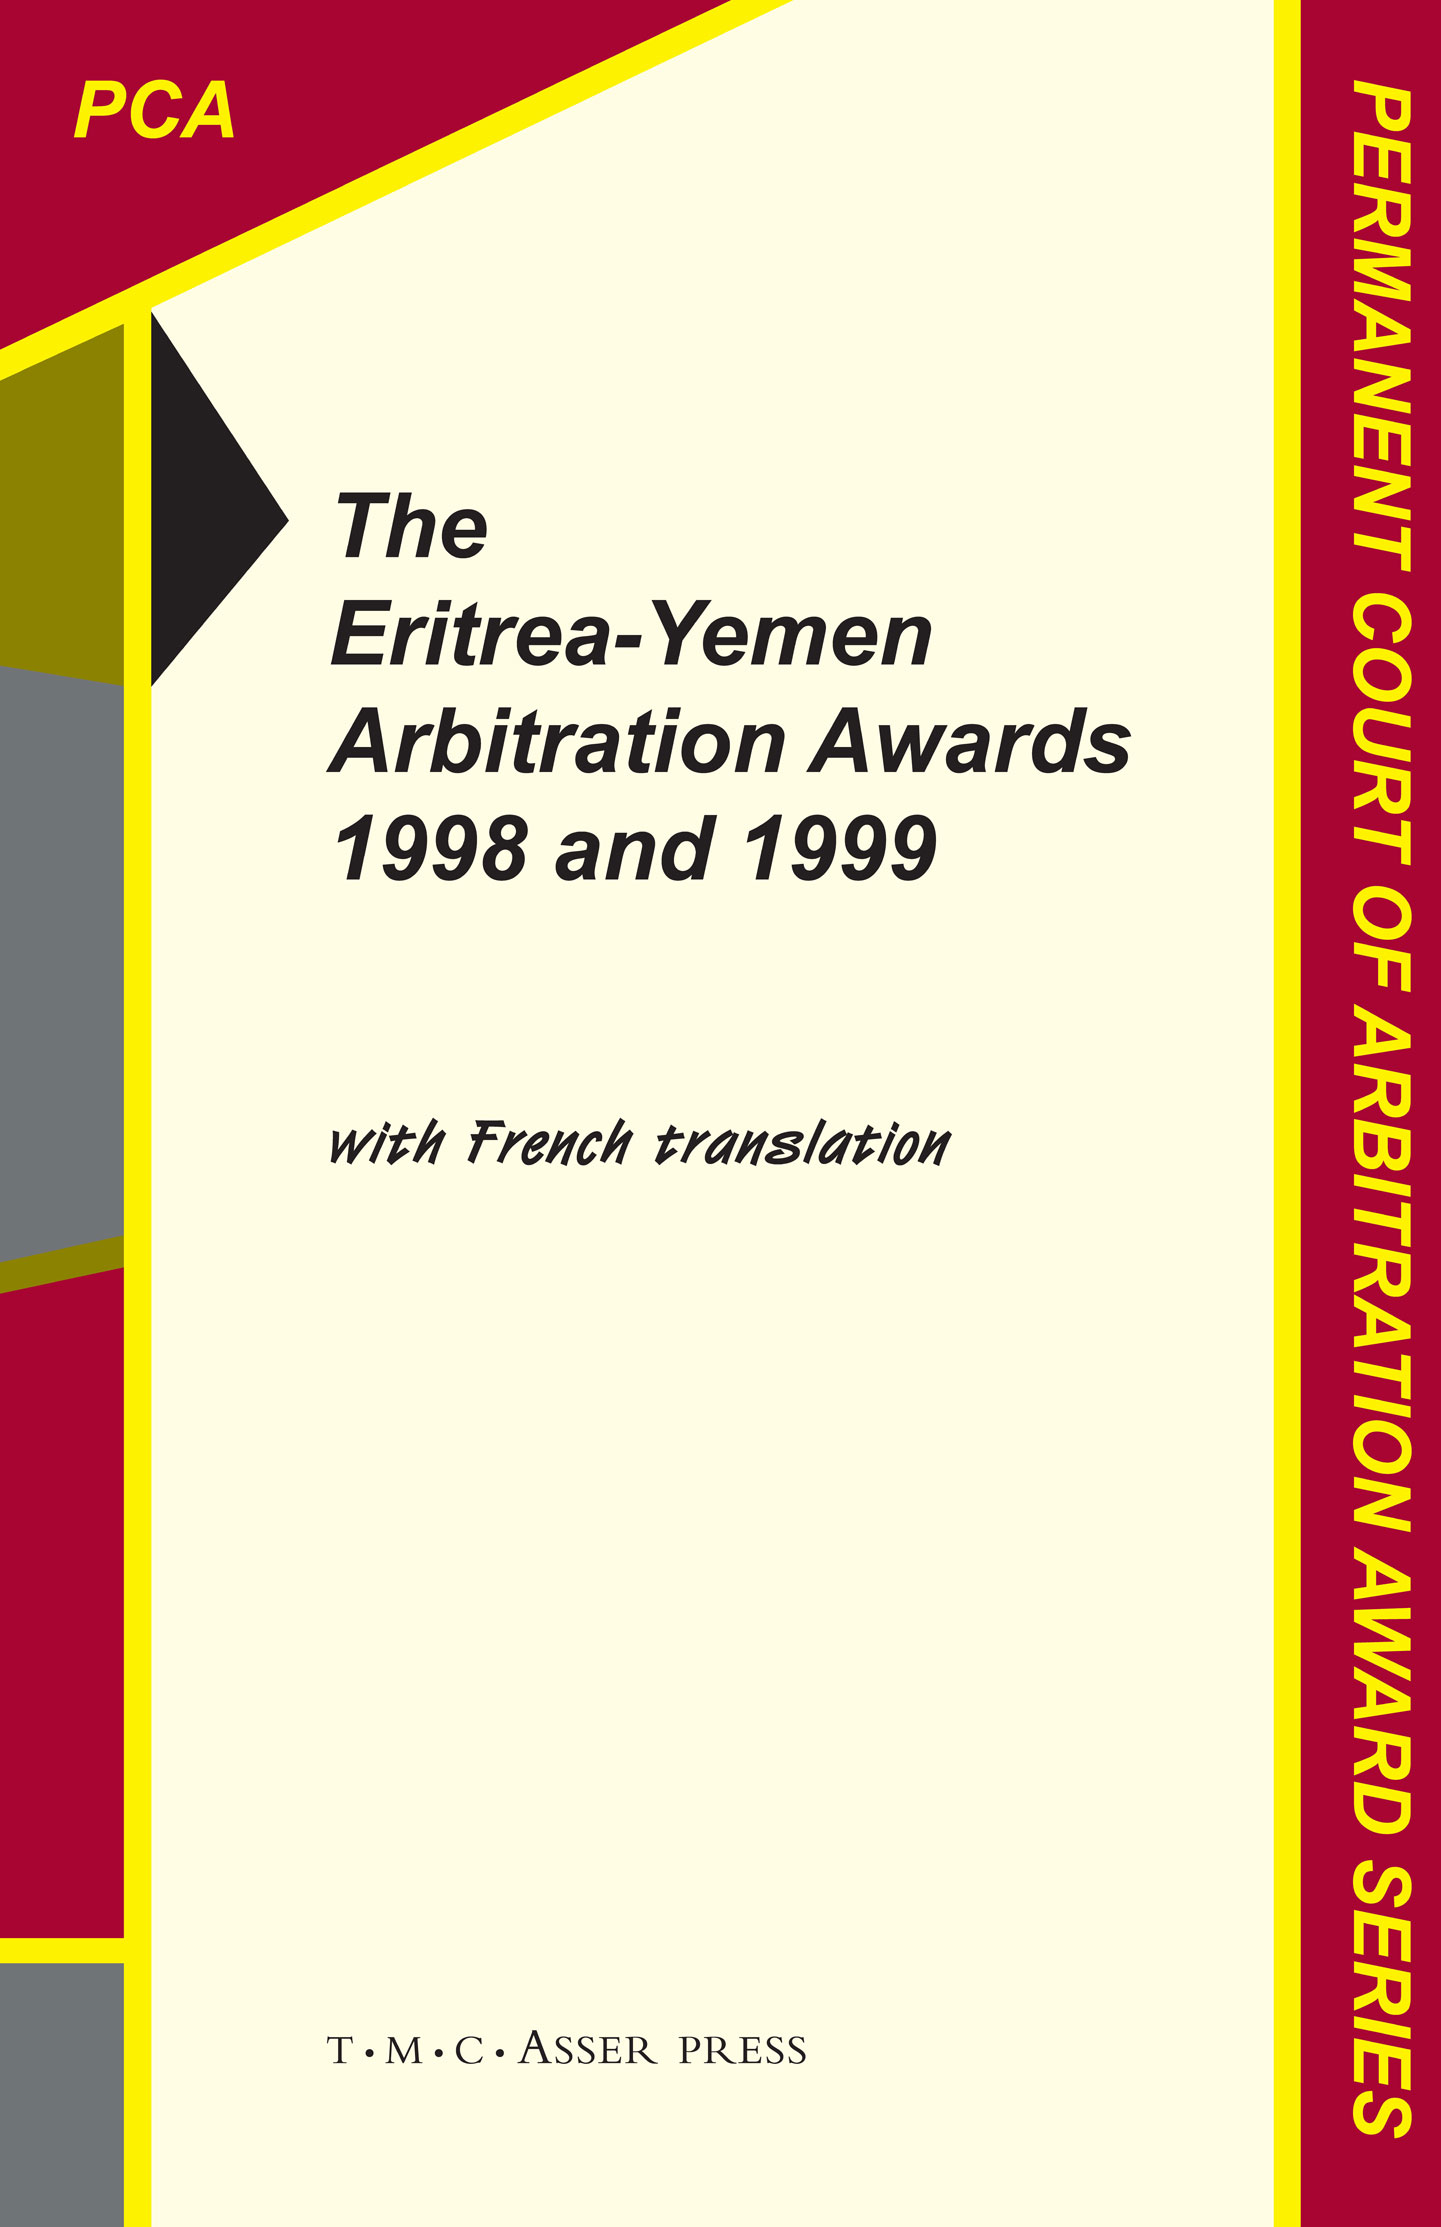 The Eritrea-Yemen Arbitration Awards 1998 and 1999